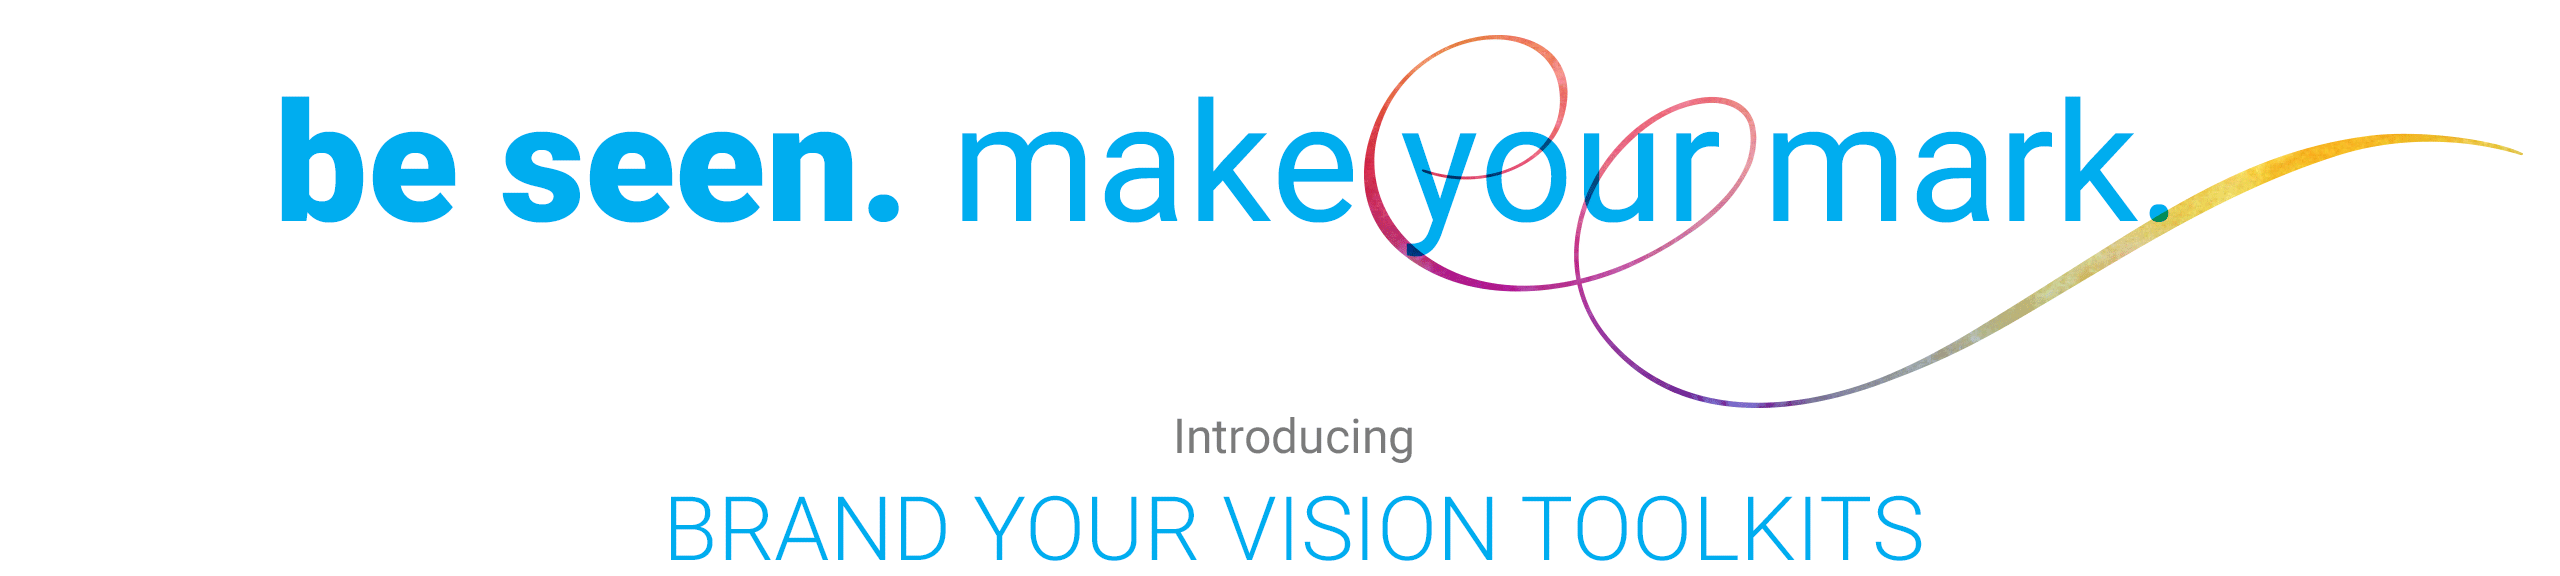 be seen. make your mark. Introducing Brand Your Vision Toolkits